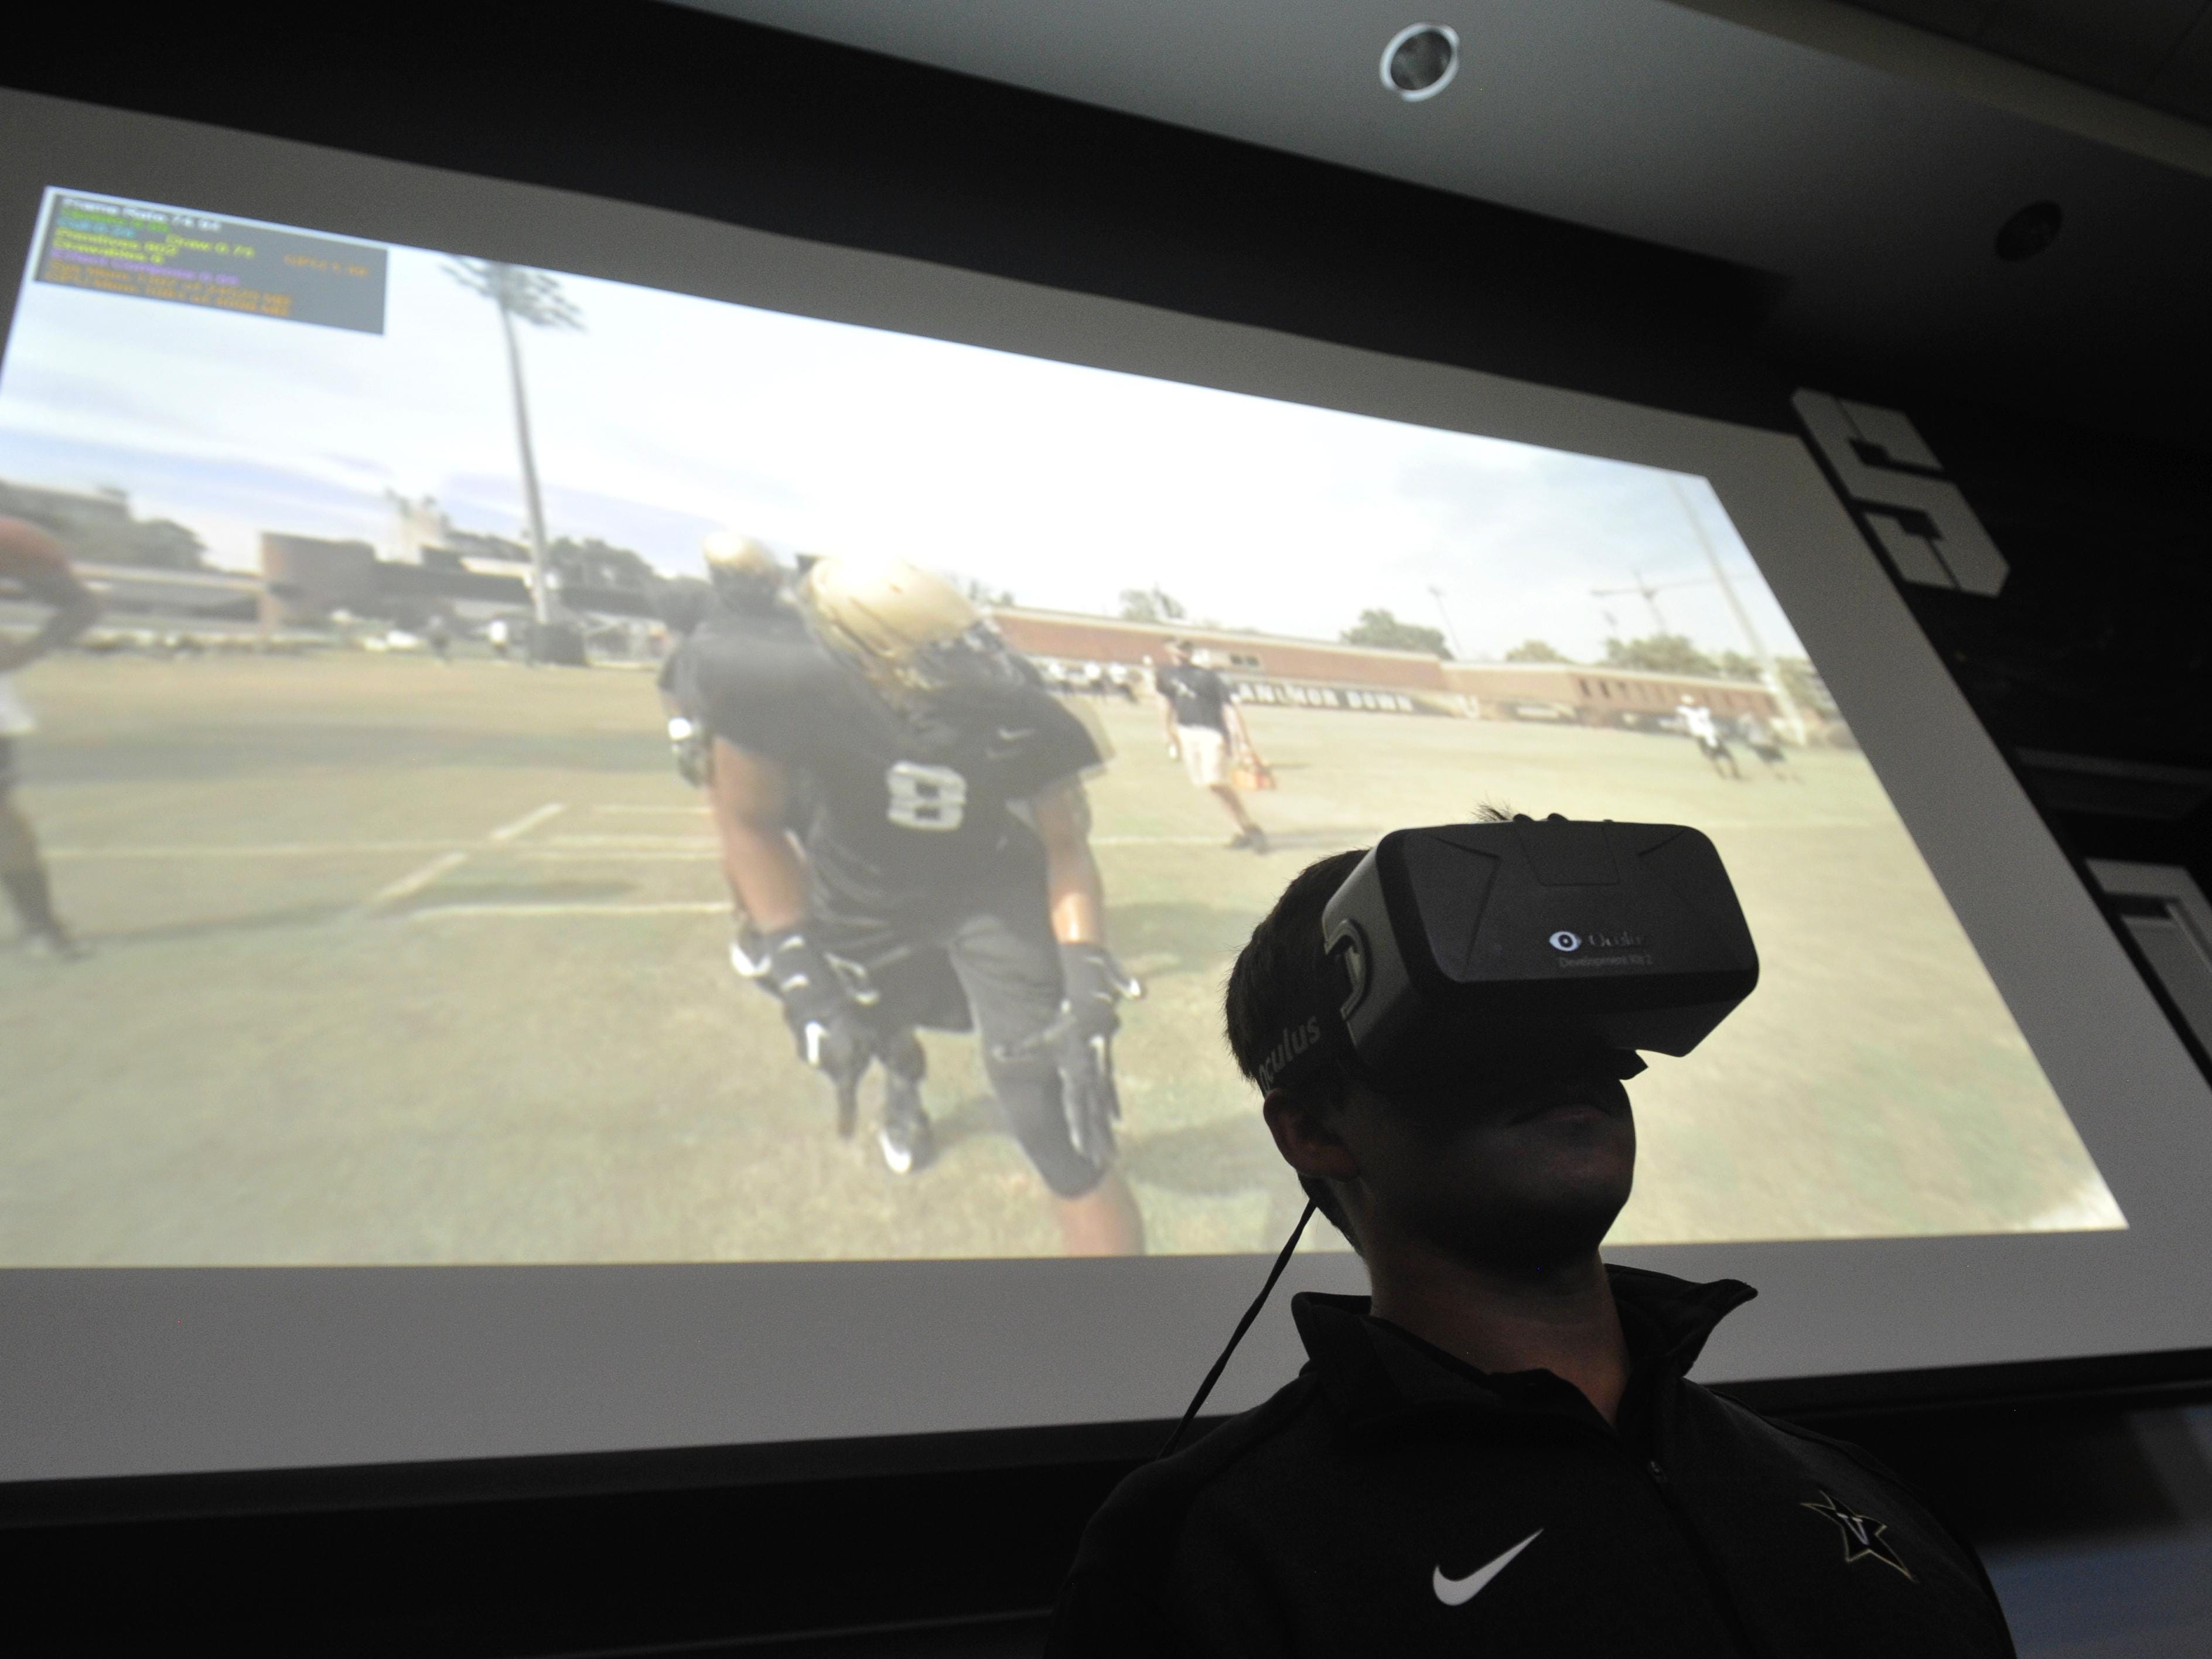 Josh Pohl, Vanderbilt's assistant director of video productions, demonstrates the virtual reality gear in the team meeting room. Video is taken with a 360-degree cluster of cameras mounted on a light-weight tripod and then viewed through a headset or on a screen.